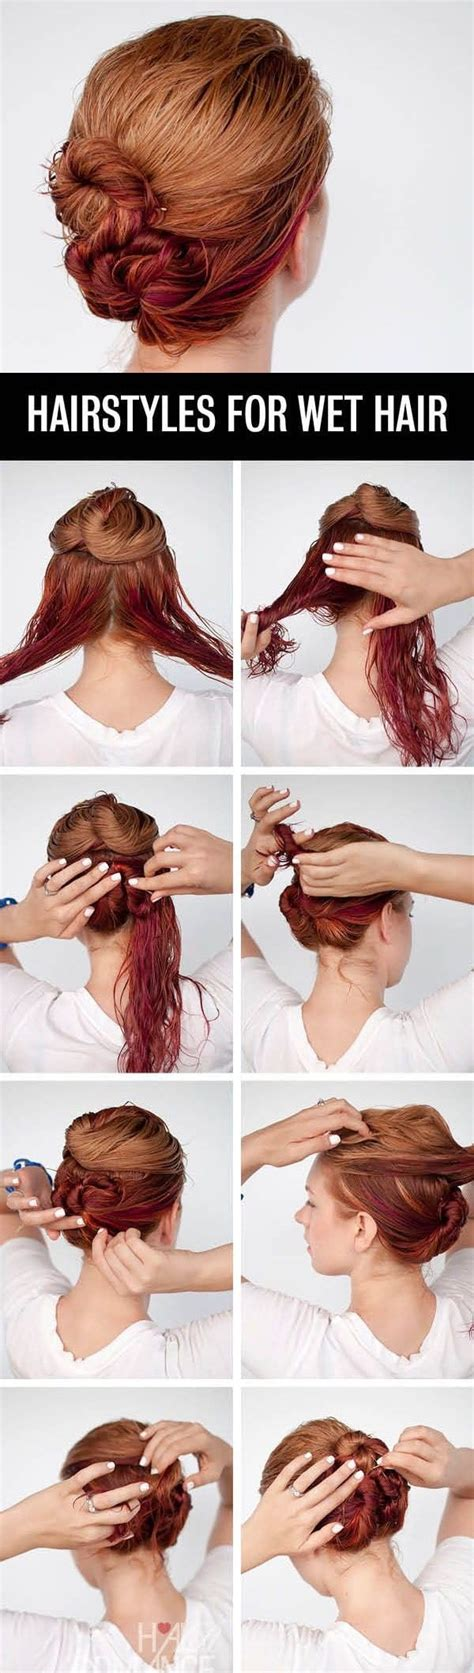 easy and quick hairstyles for wet hair 12 easy diy hairstyle tutorials for every occasion